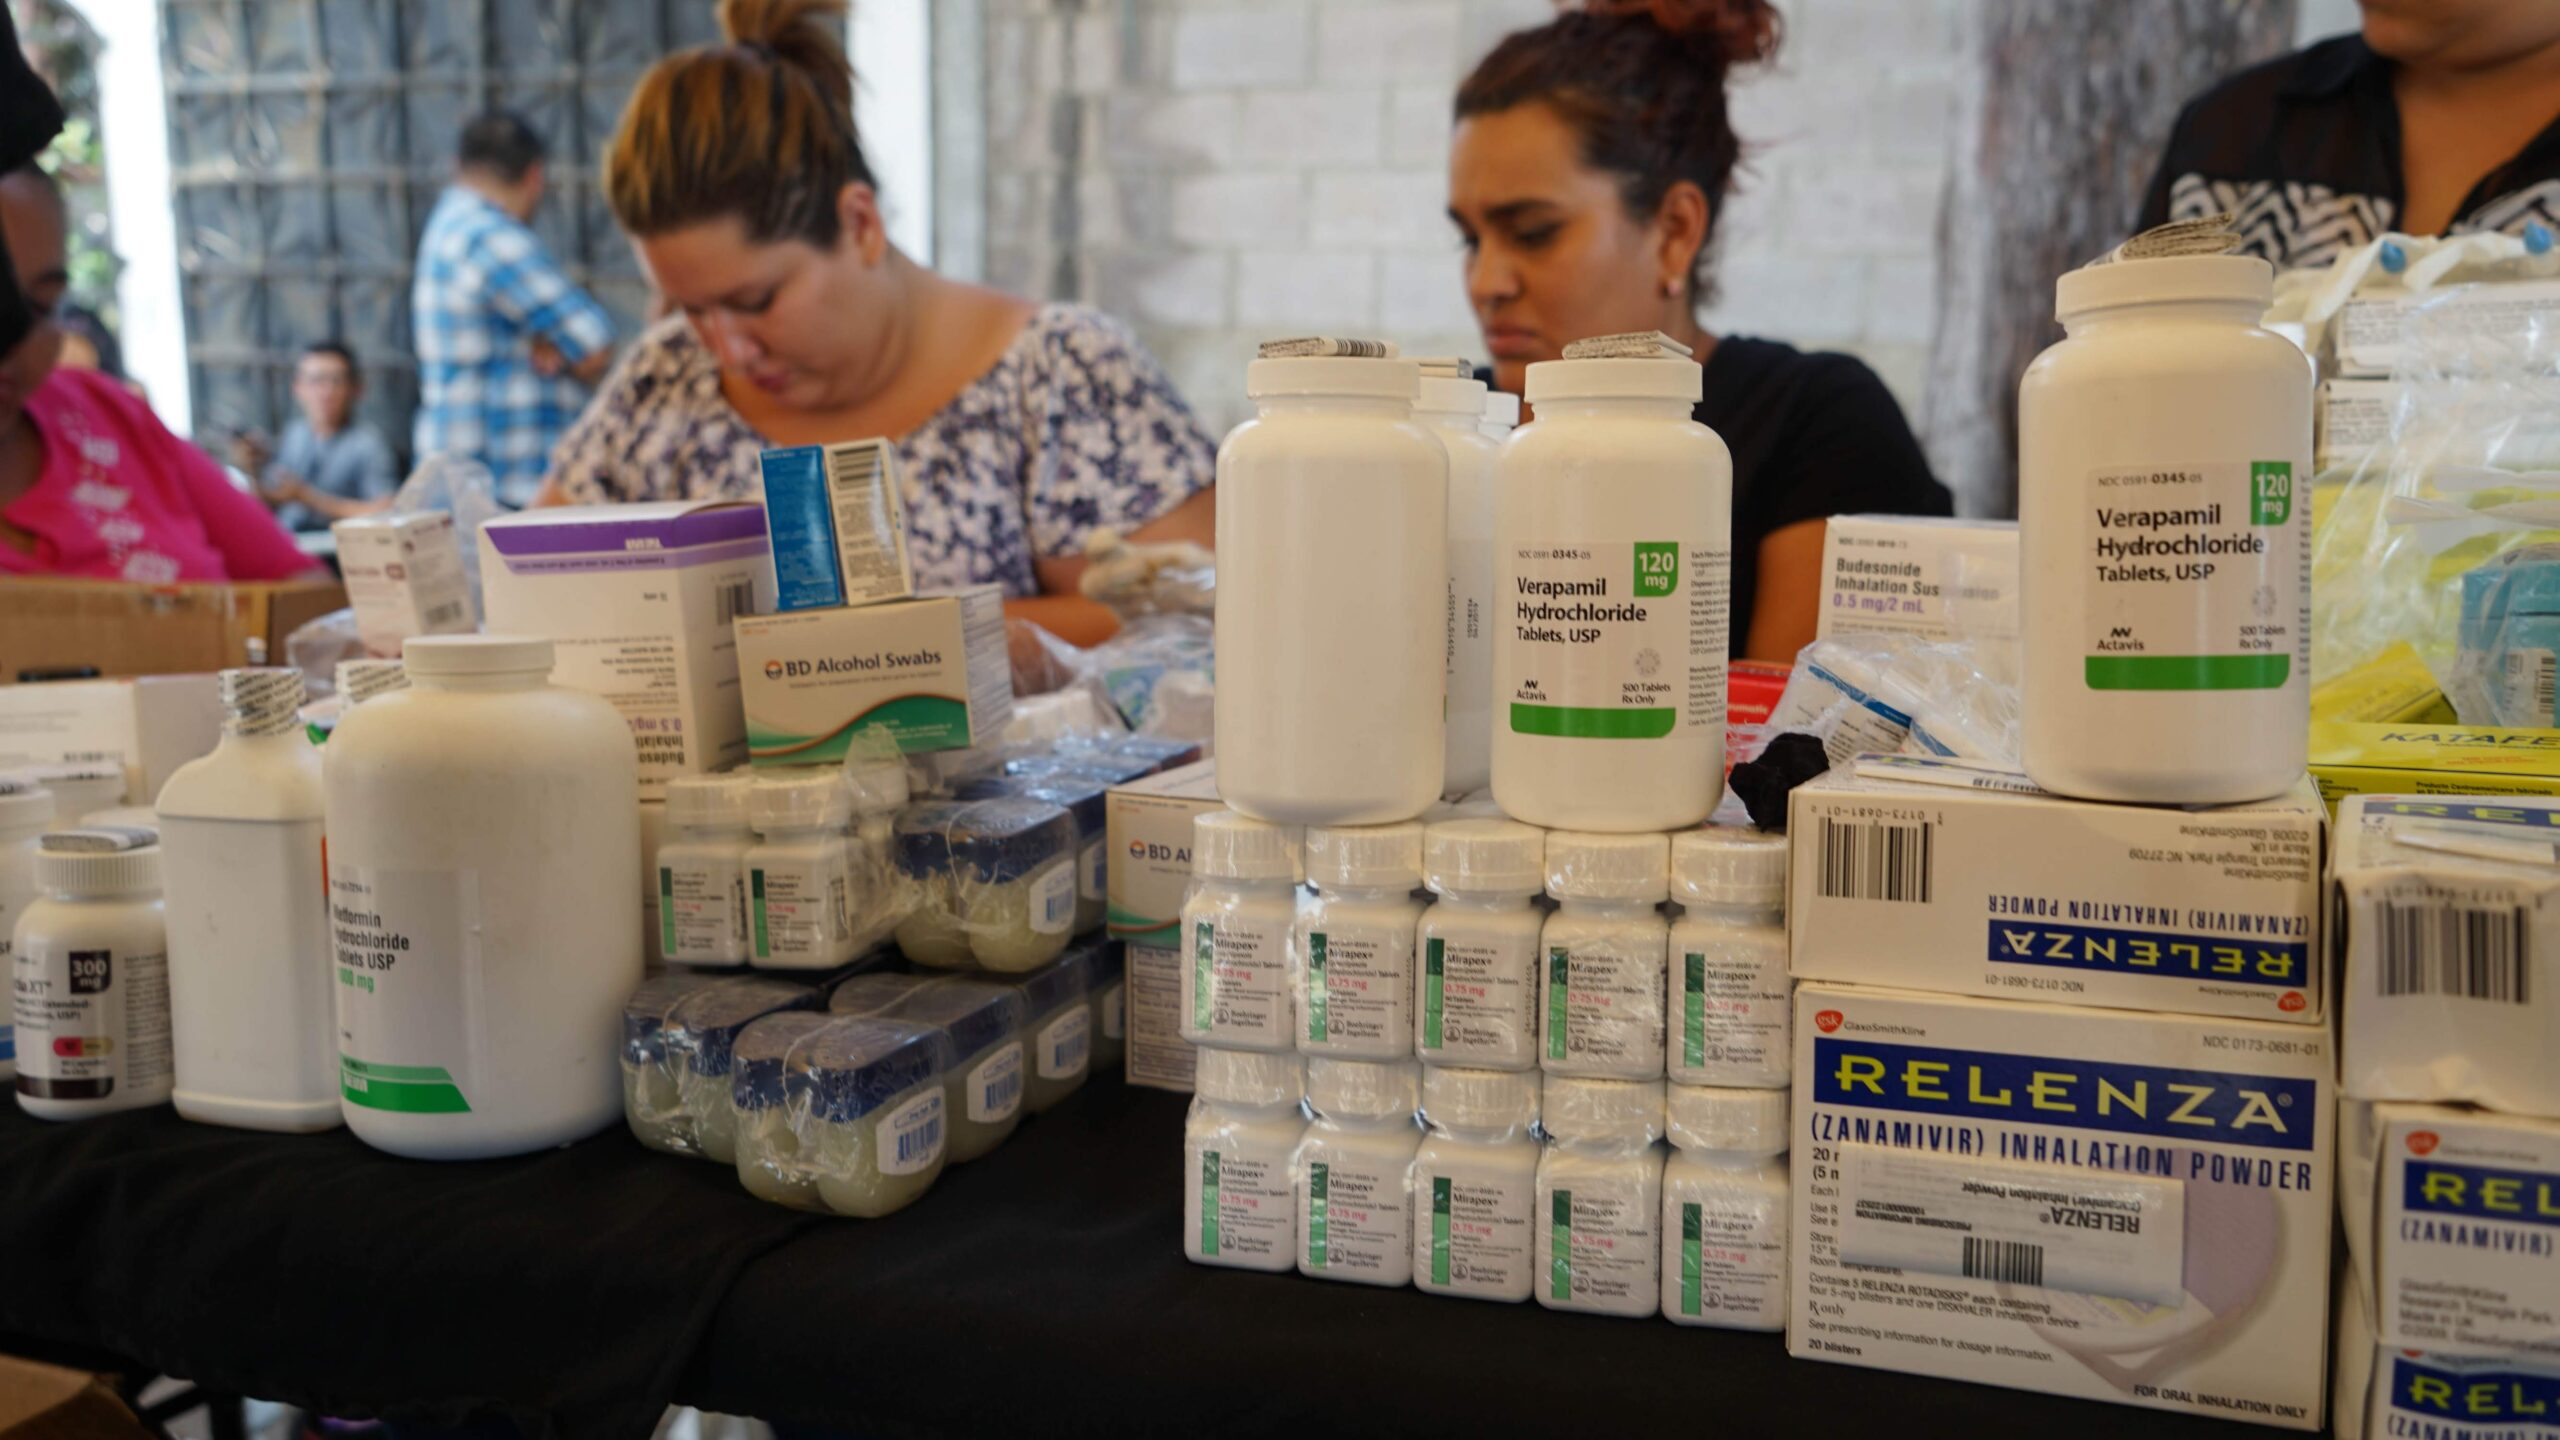 Direct Relief-donated medicines are distributed to volunteer health professionals serving patients during a community health event in San Sebastian de Saltillo, Santa Ana, El Salvador in February 2019. The event was hosted by the municipality with support from Proemigrant, a local nonprofit that distributes Direct Relief-donated medicines to vulnerable patients across the country. (Greg Mora/Direct Relief)